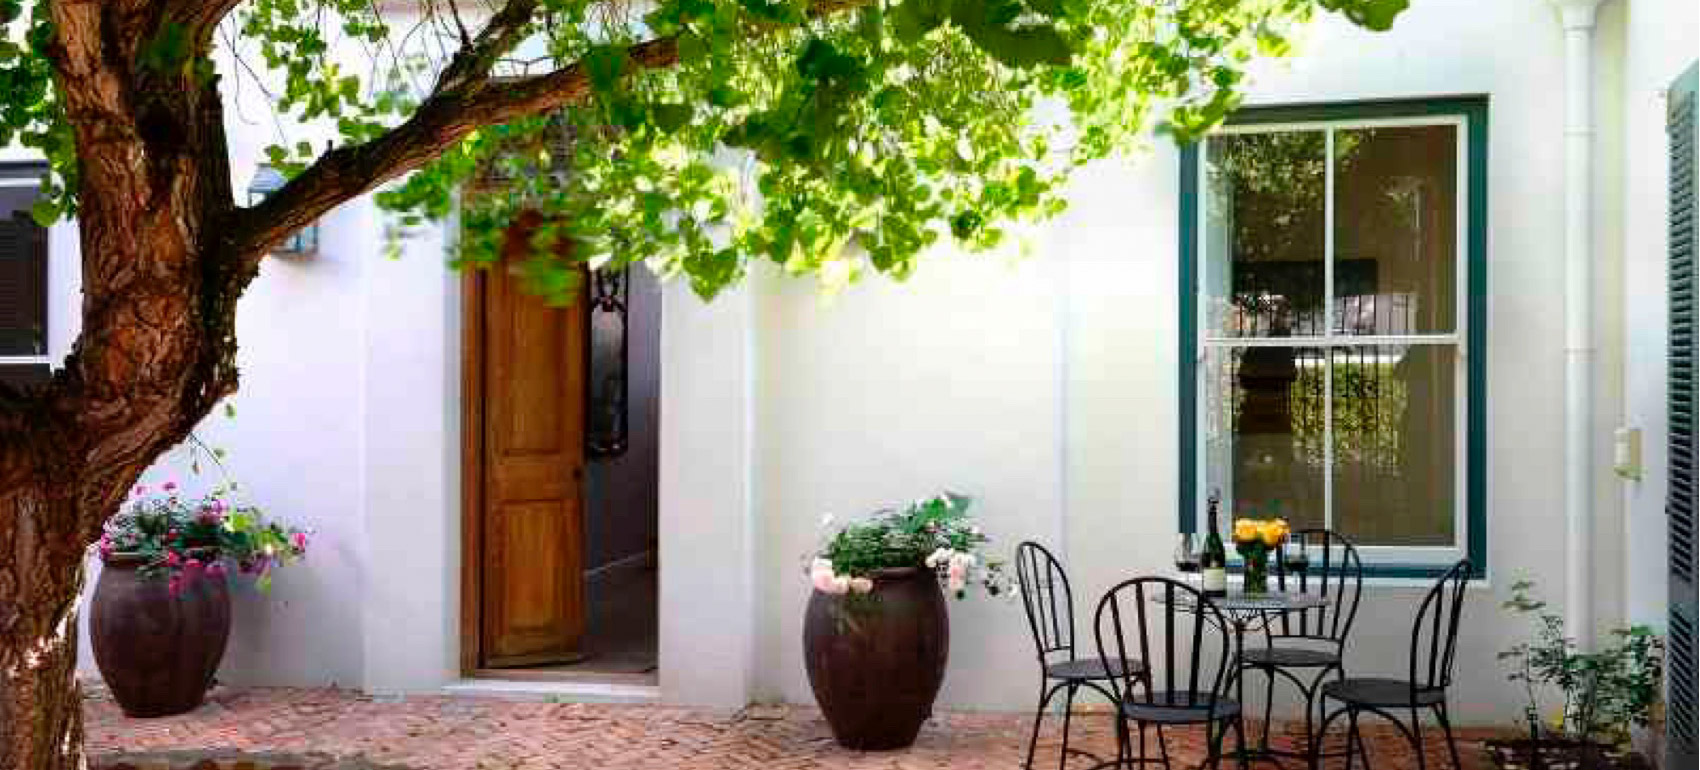 16-cabriere-street-gallery-01